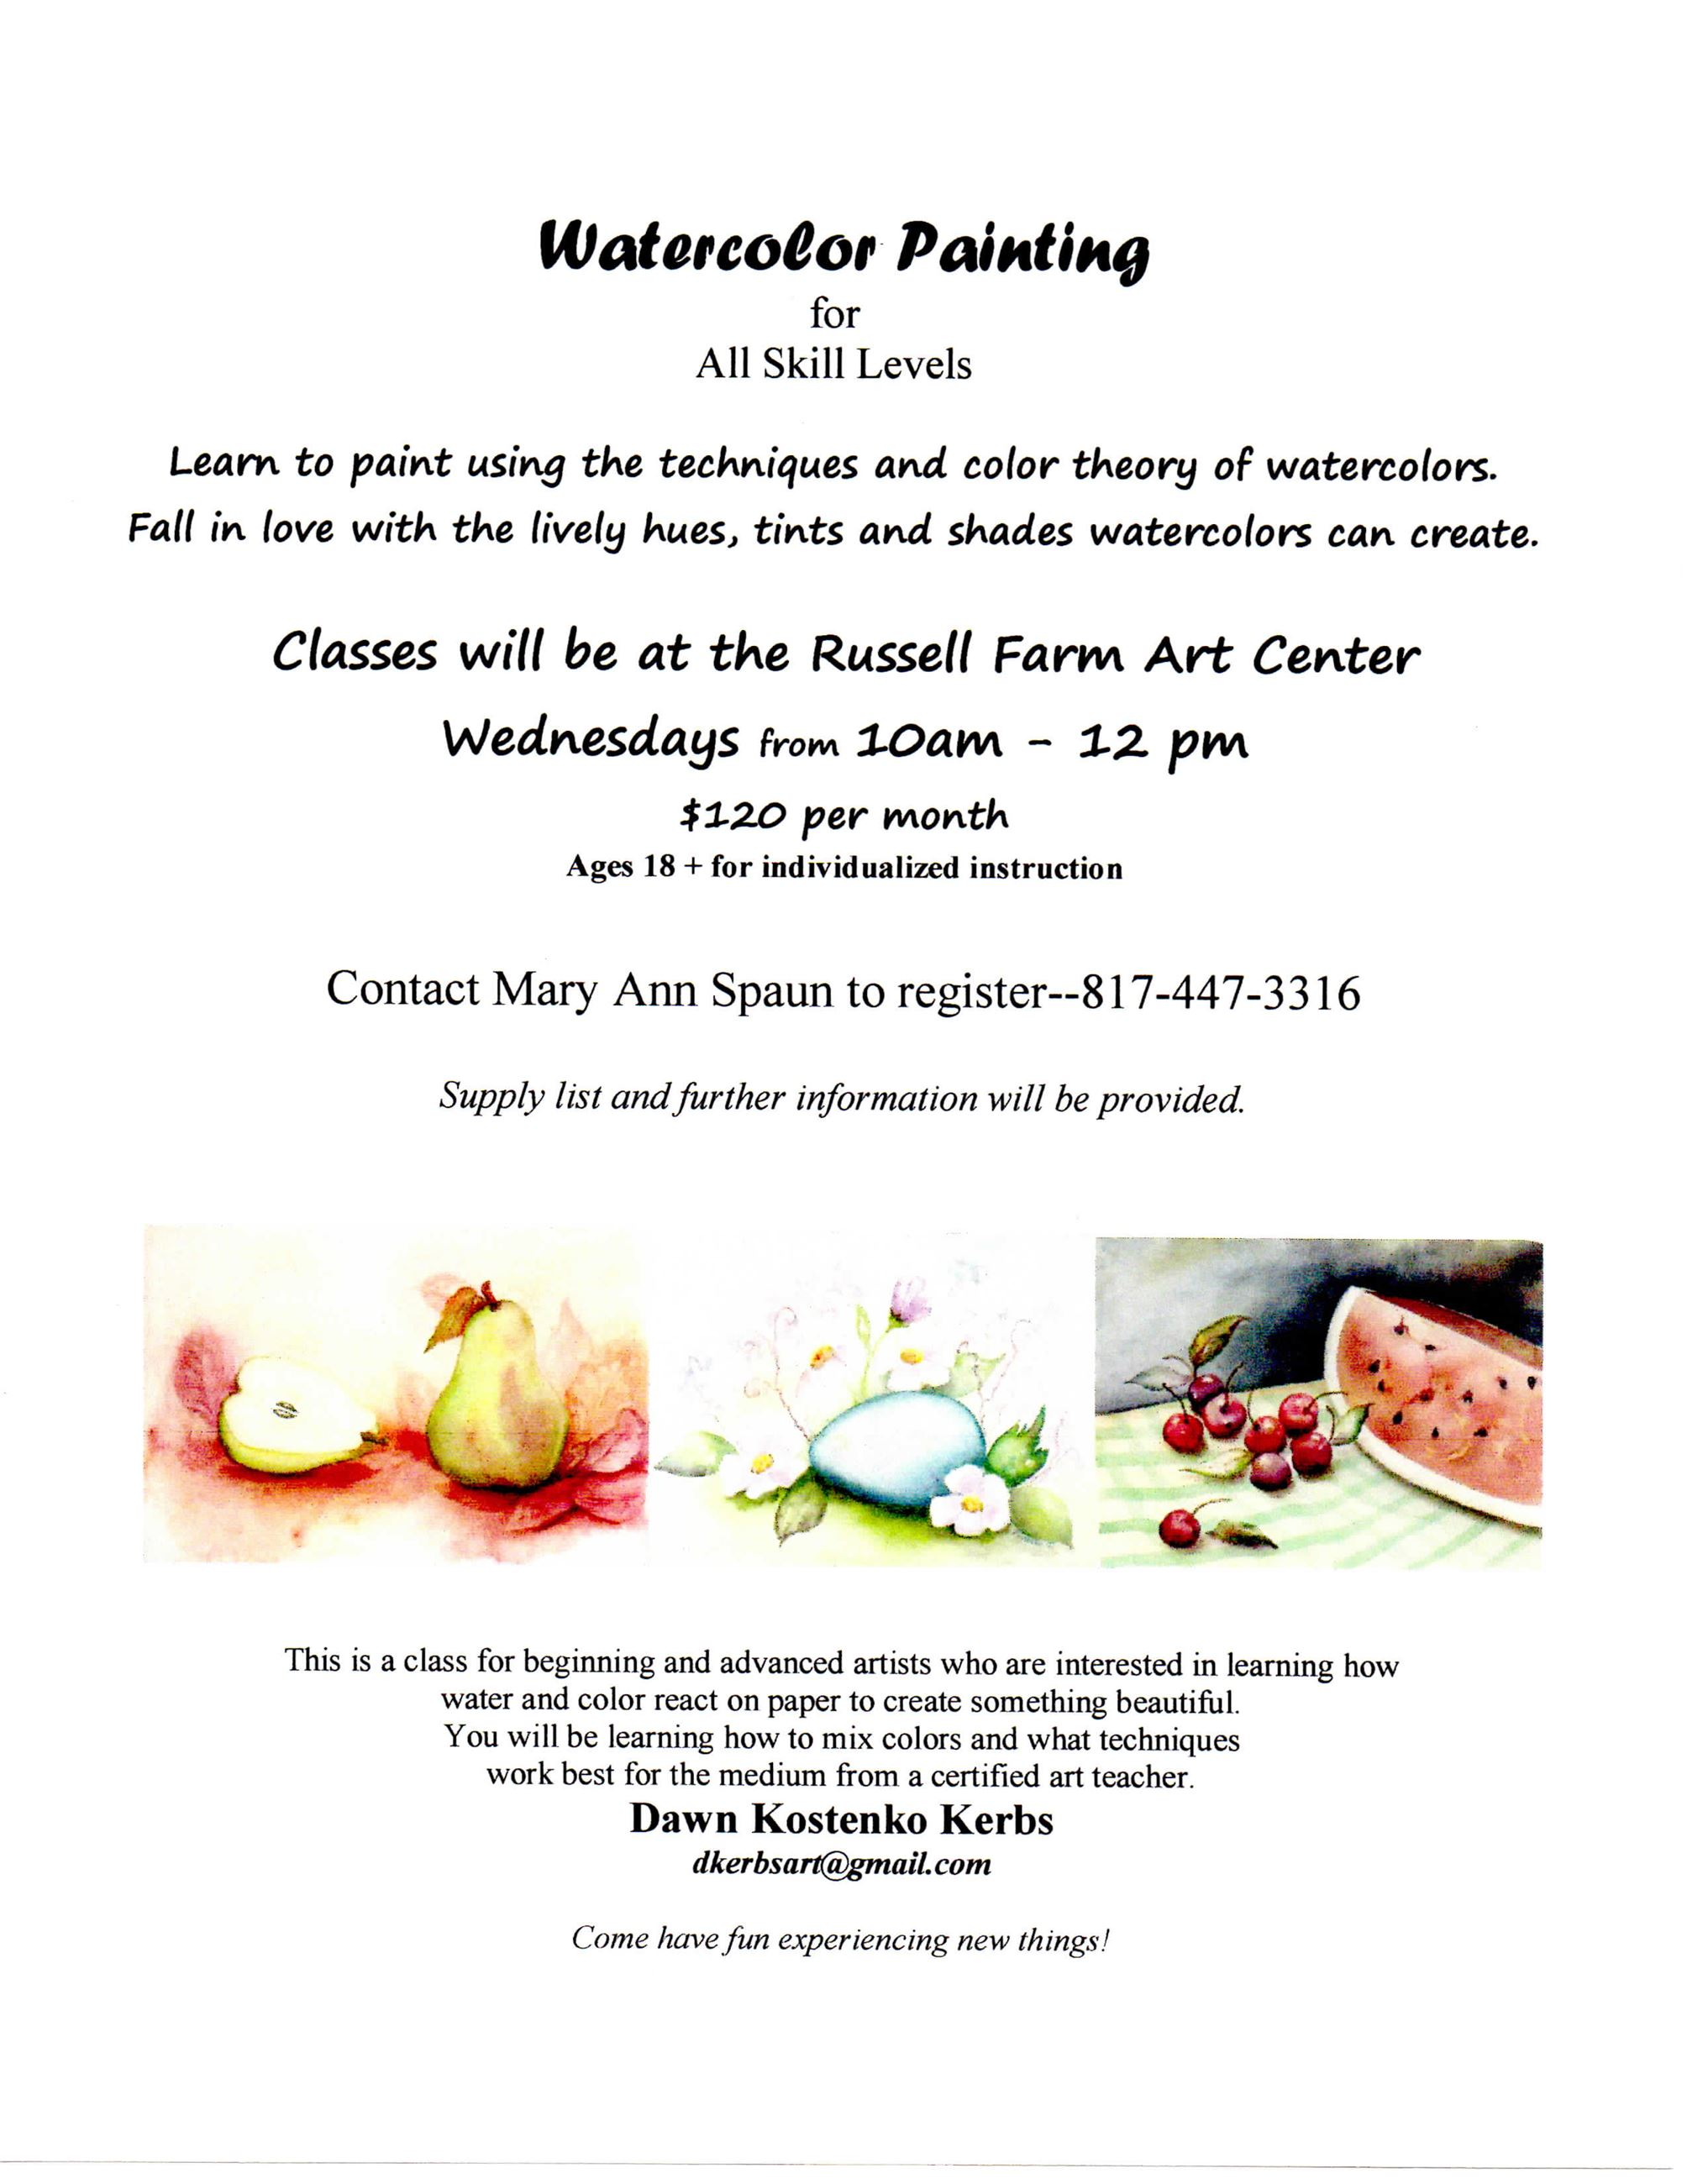 Dawn Kerbs Watercolor class flyer 8-19-17_Page_1